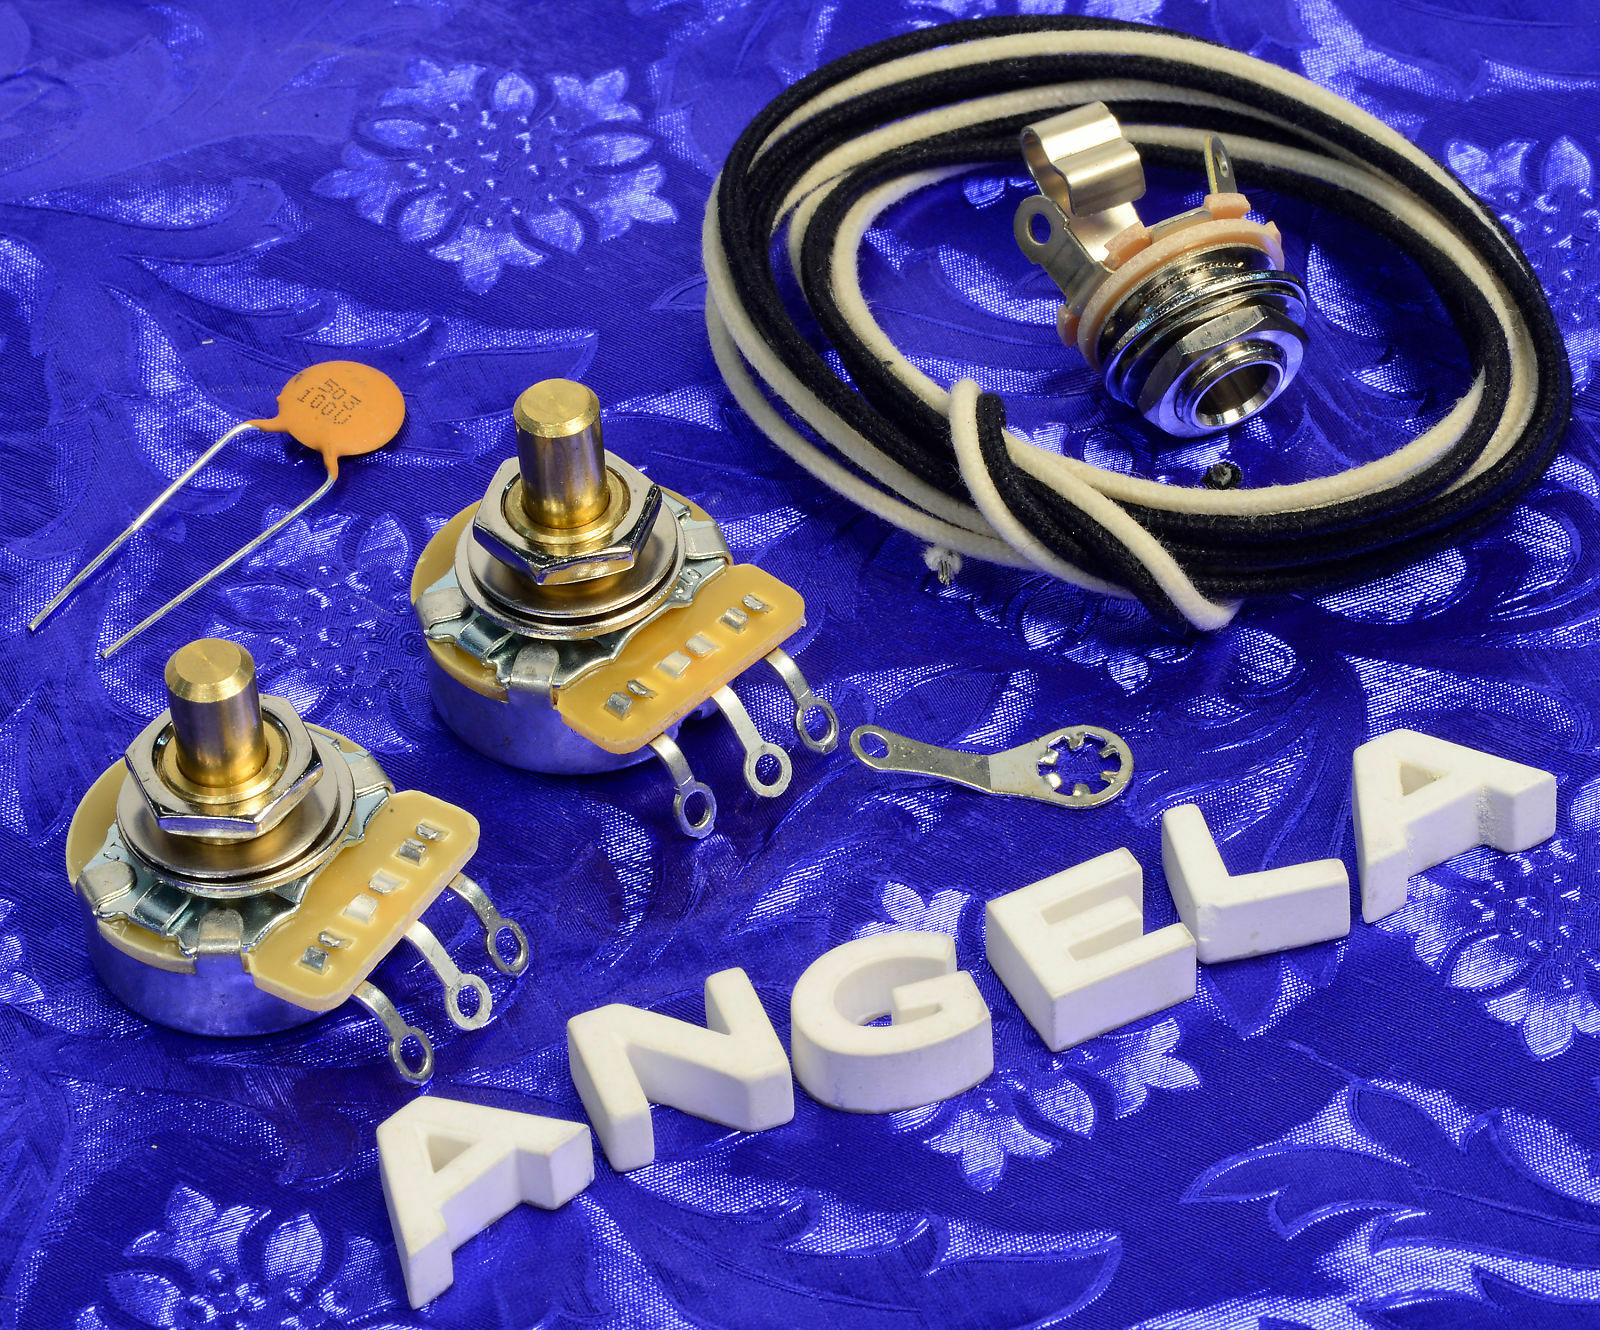 Angela Instruments Basic Wiring Kit For Fender Precision Bass With P Cts 450g Pots 1 Of 1free Shipping